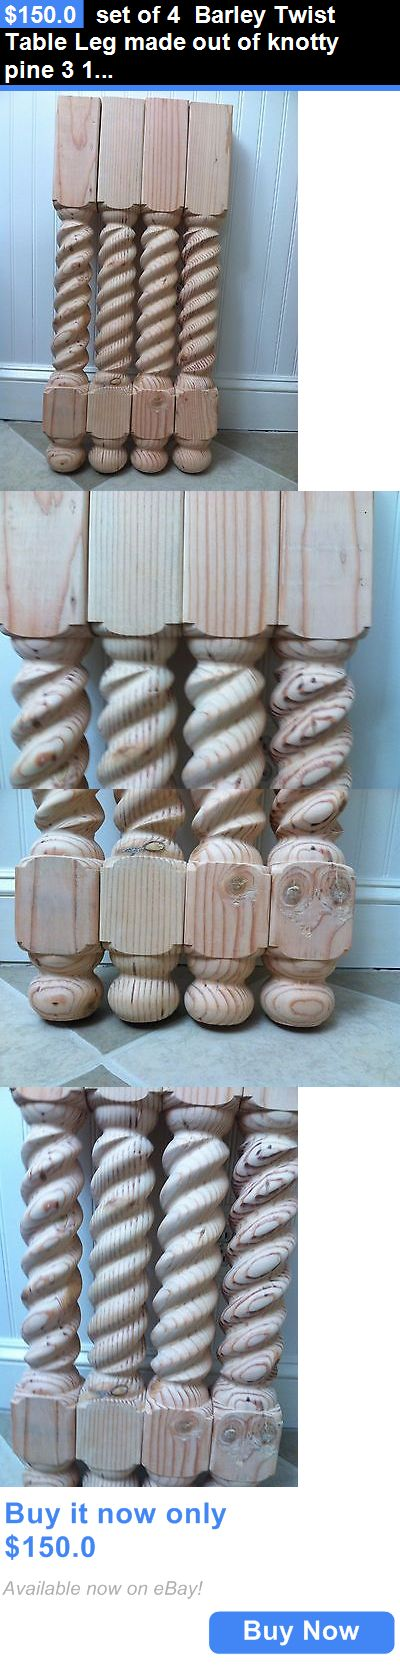 Antiques: Set Of 4 Barley Twist Table Leg Made Out Of Knotty Pine 3 1/2 X 29 BUY IT NOW ONLY: $150.0